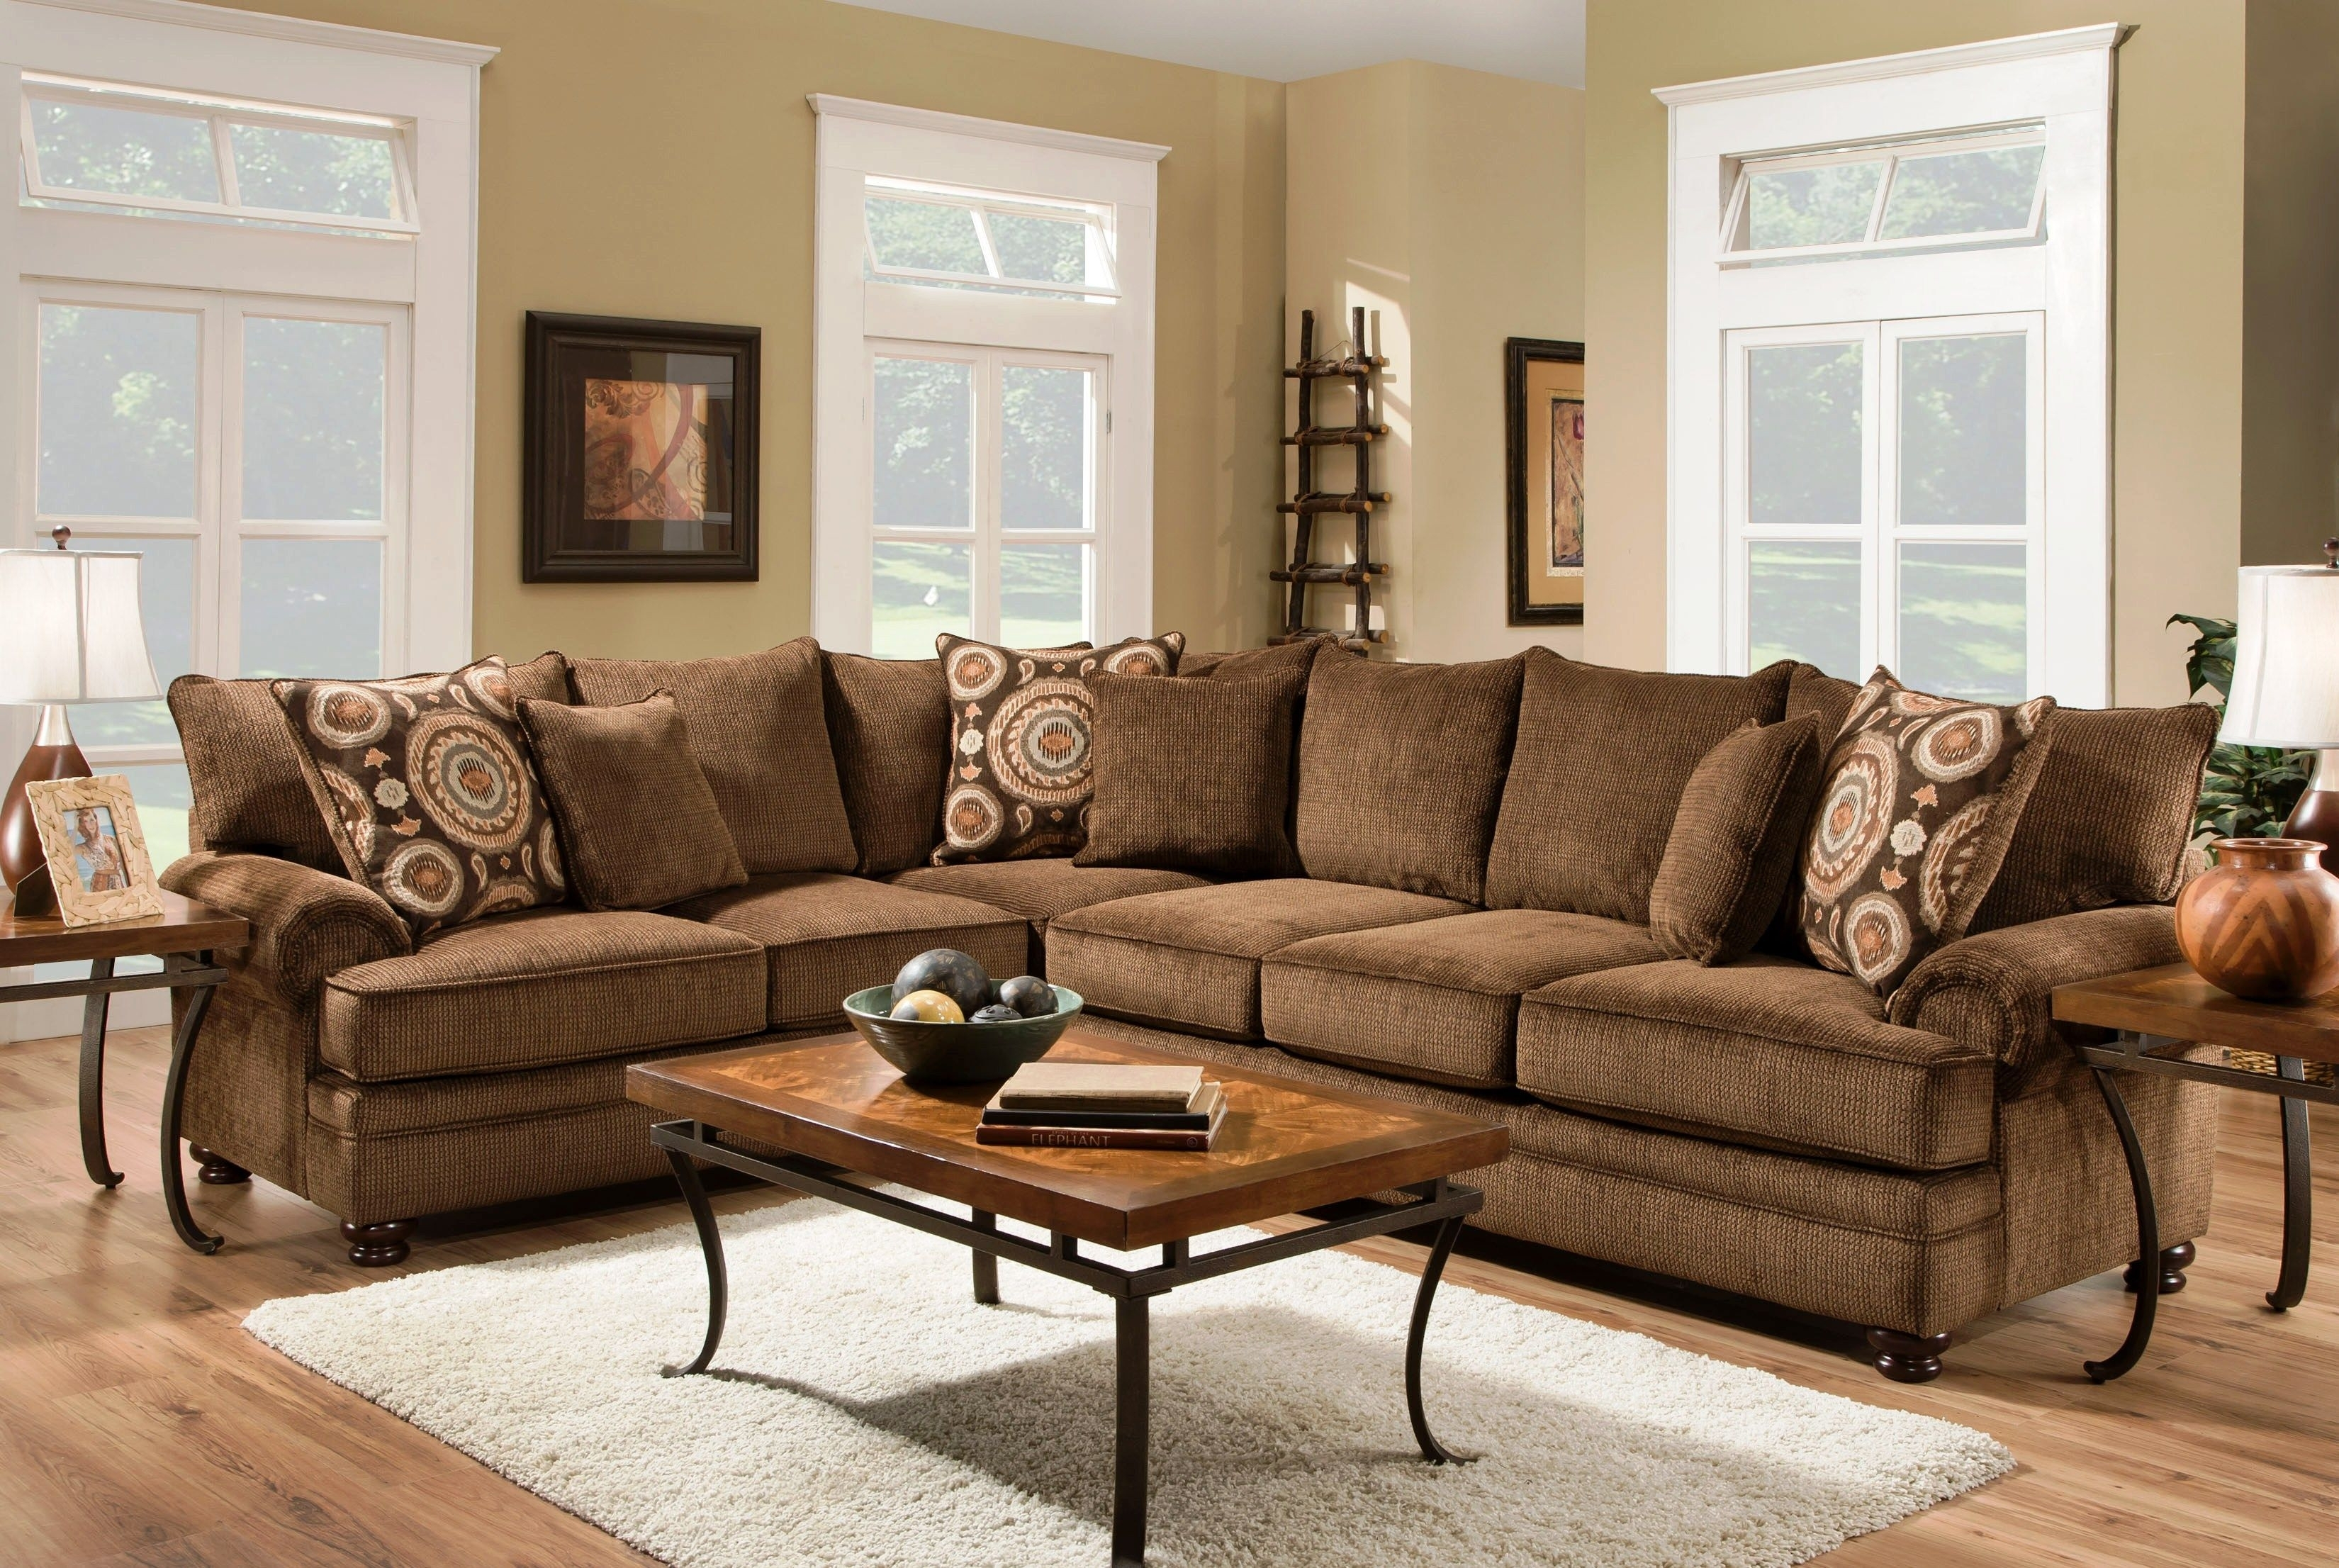 Beige Couch Pillows Luxury Ria Twill Chocolate 2 Piece Sectional Throughout Josephine 2 Piece Sectionals With Laf Sofa (Image 4 of 25)